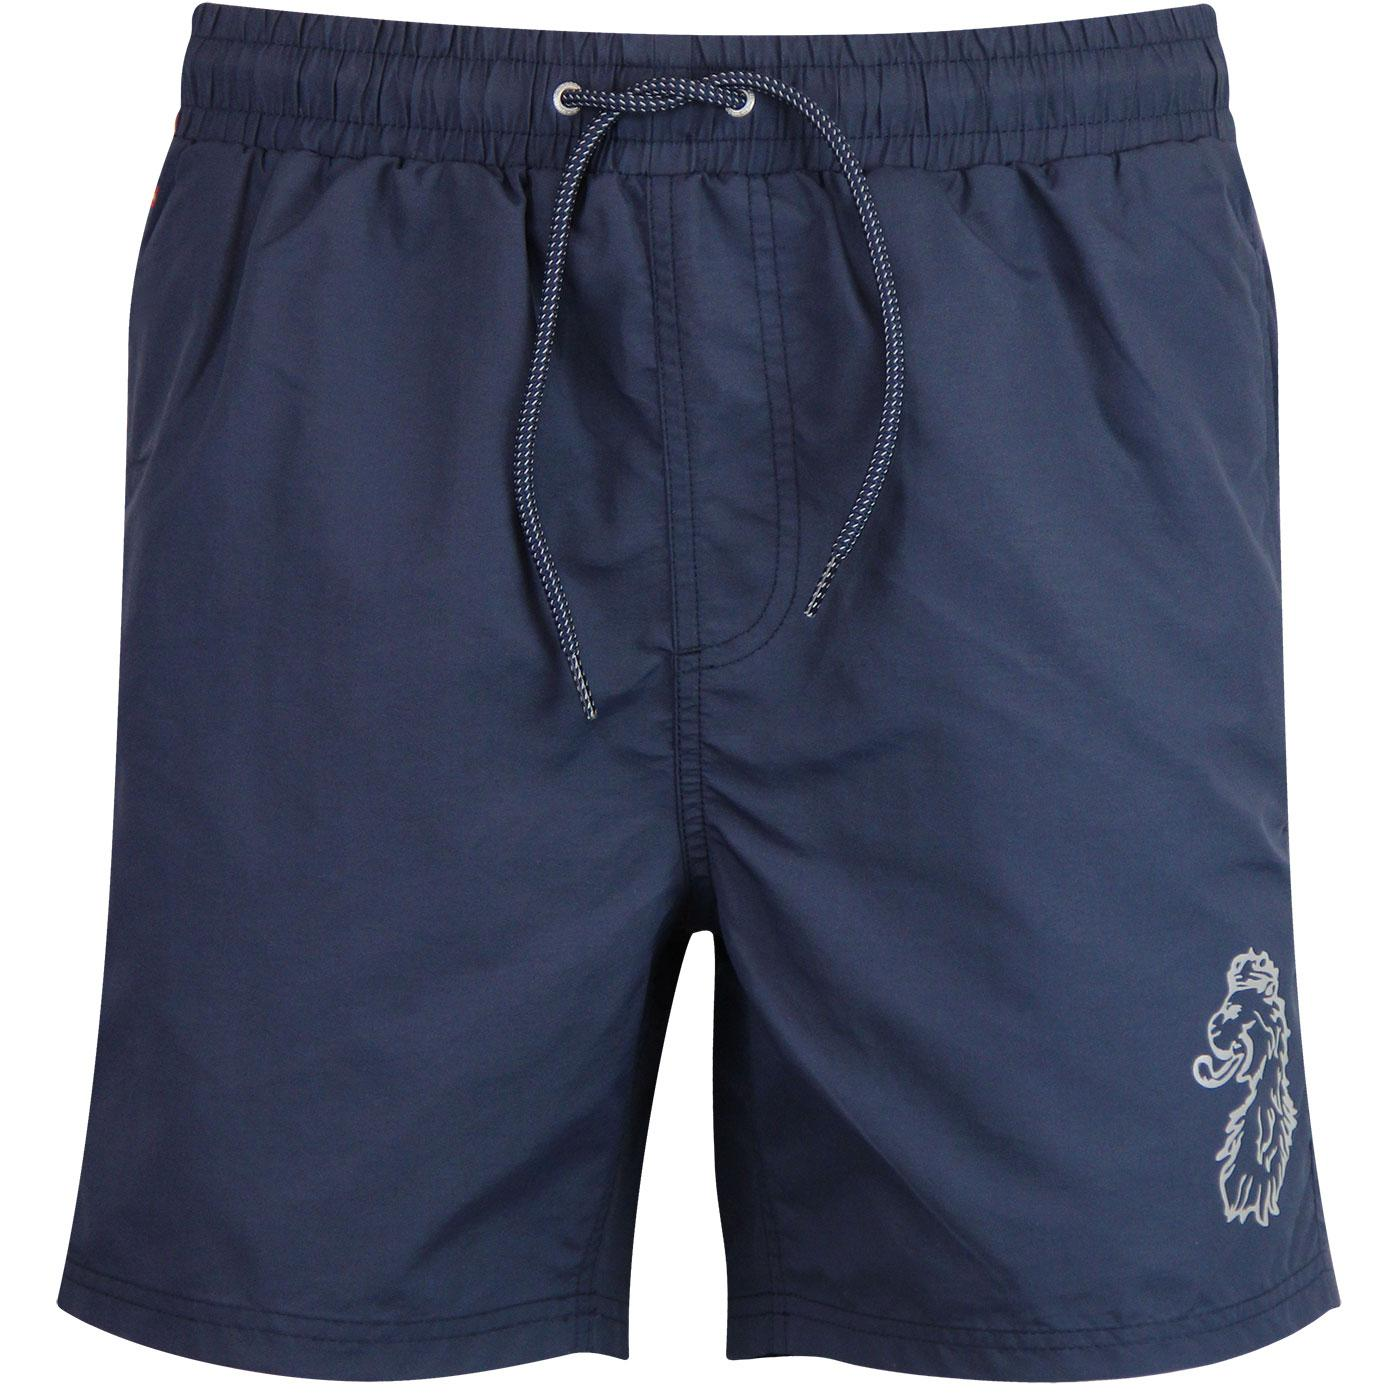 Fuse LUKE Reflective Logo Print Swim Shorts NAVY